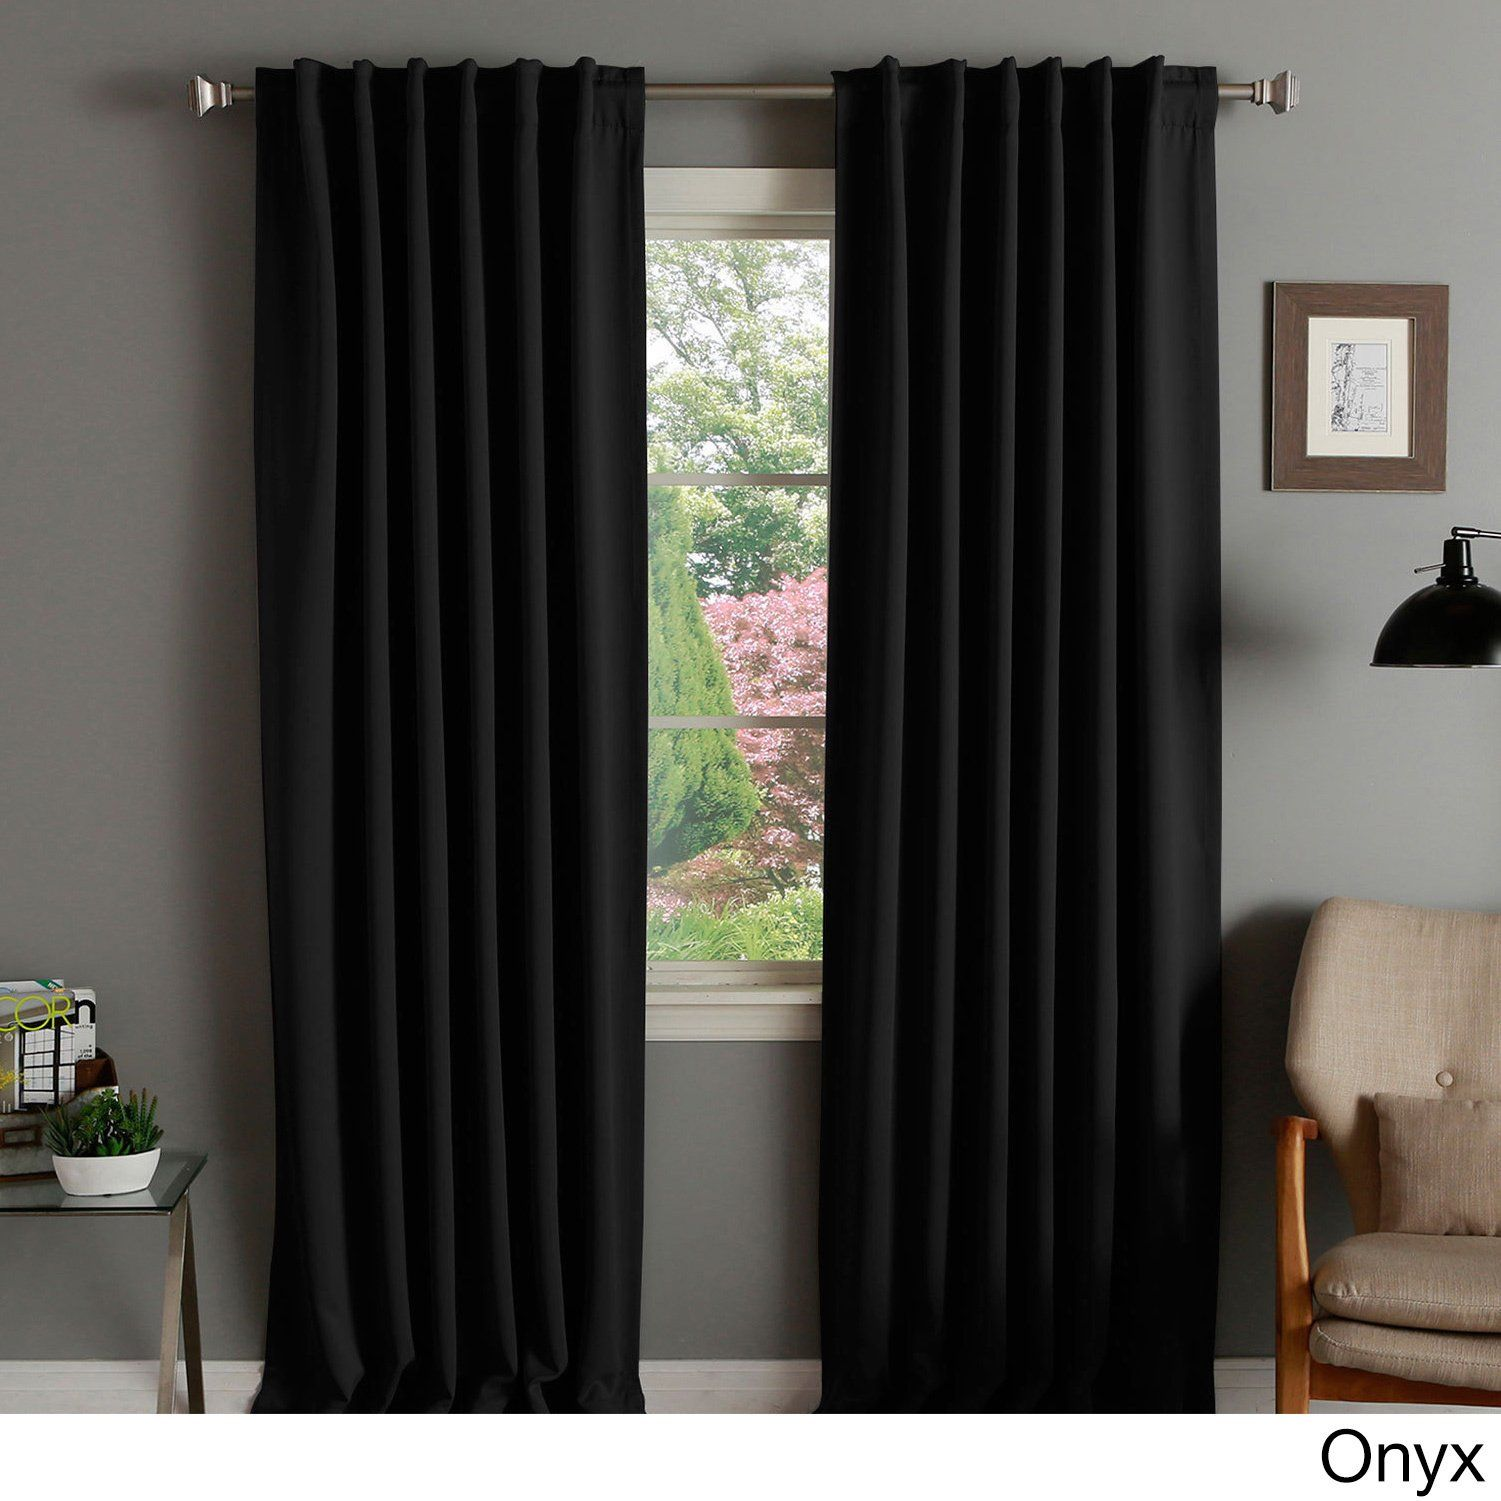 Aurora Home Insulated Thermal Blackout 84 Inch Curtain Panel Pair